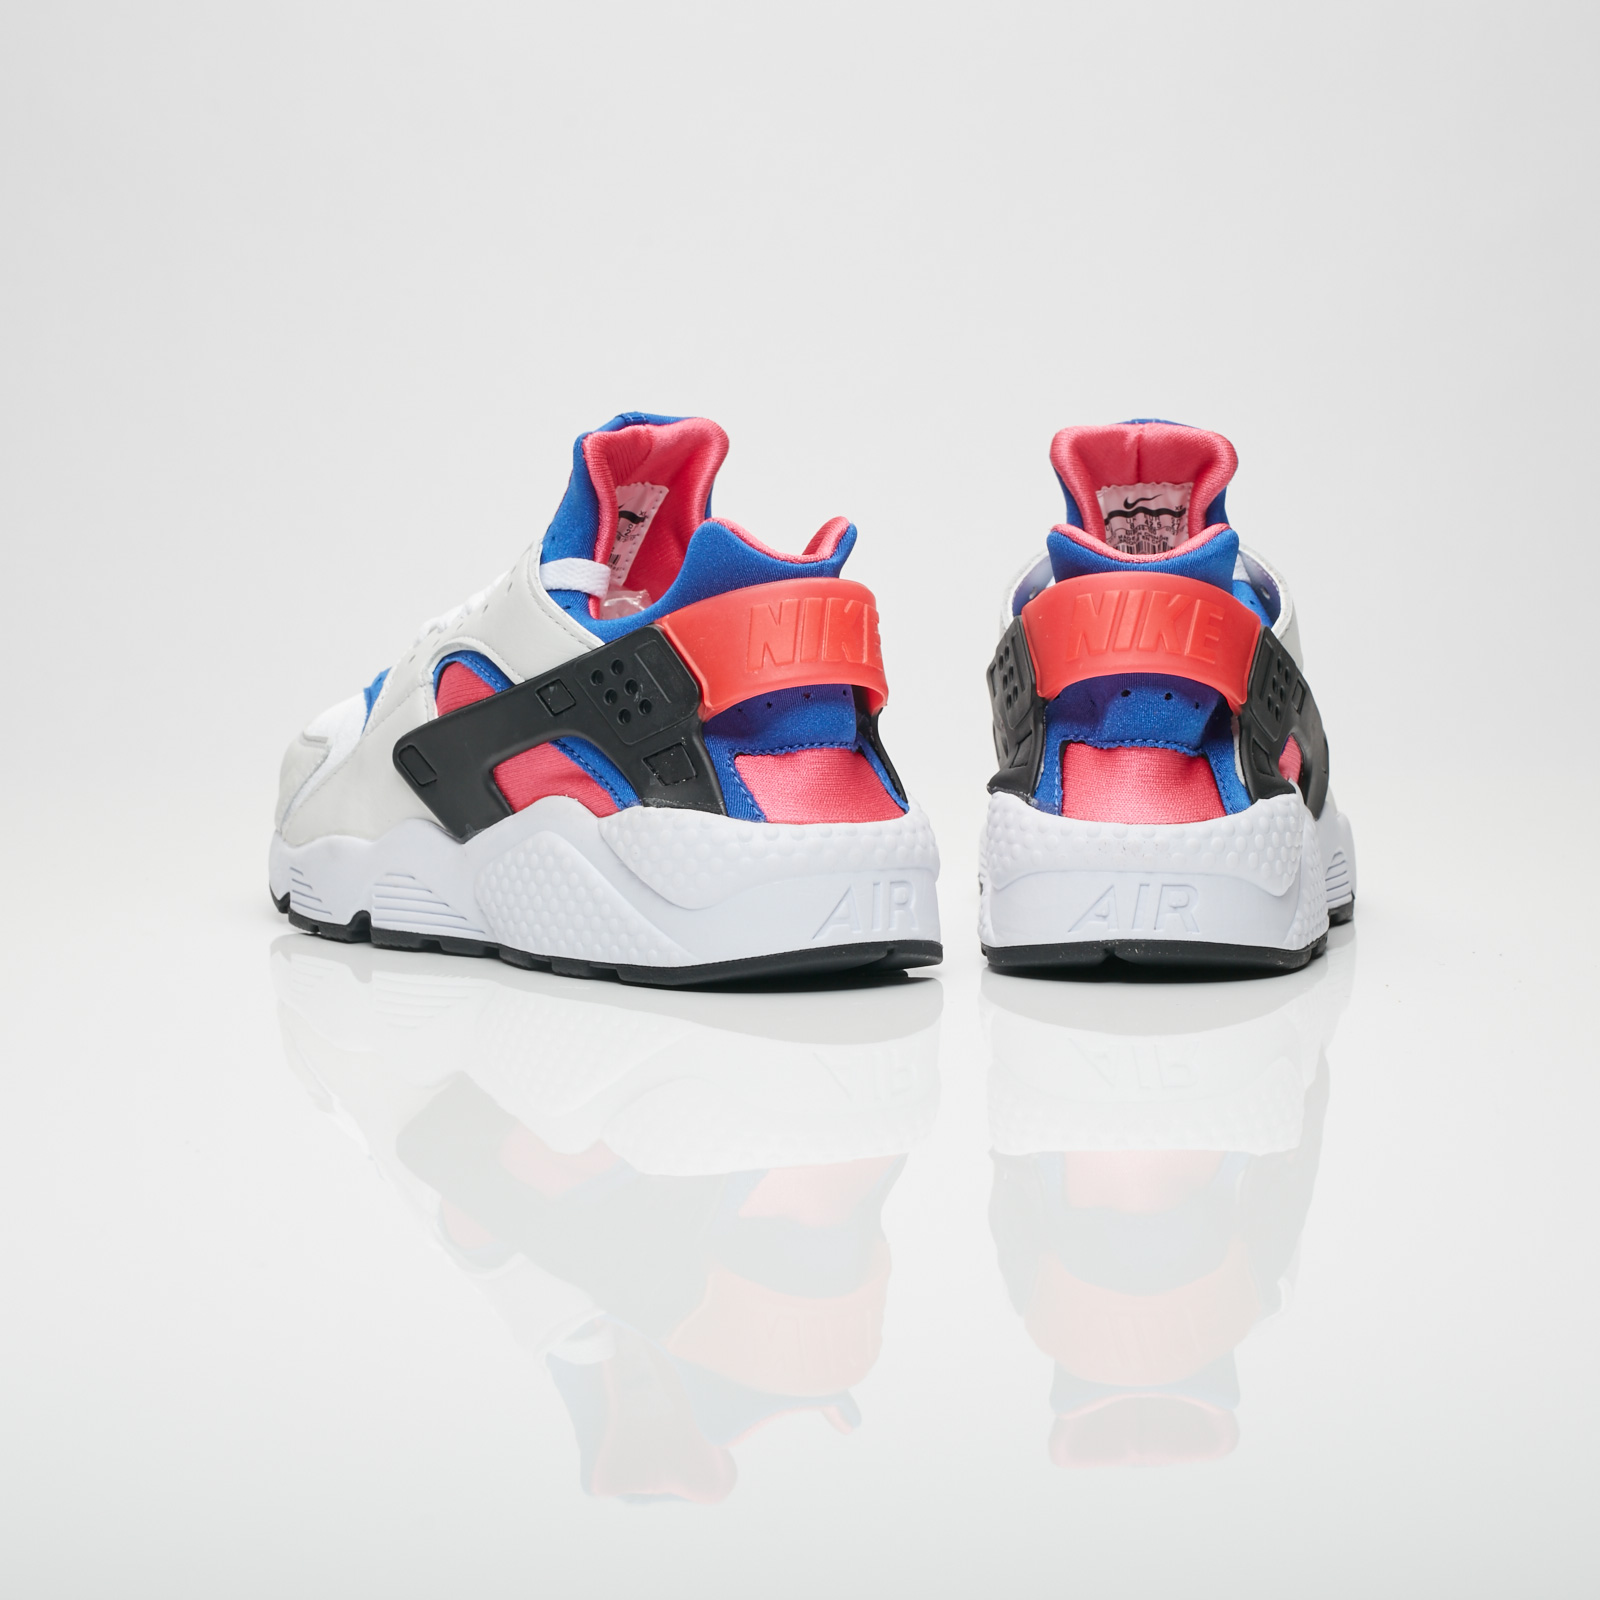 2206306aa6306 Nike Air Huarache Run 91 QS - Ah8049-100 - Sneakersnstuff